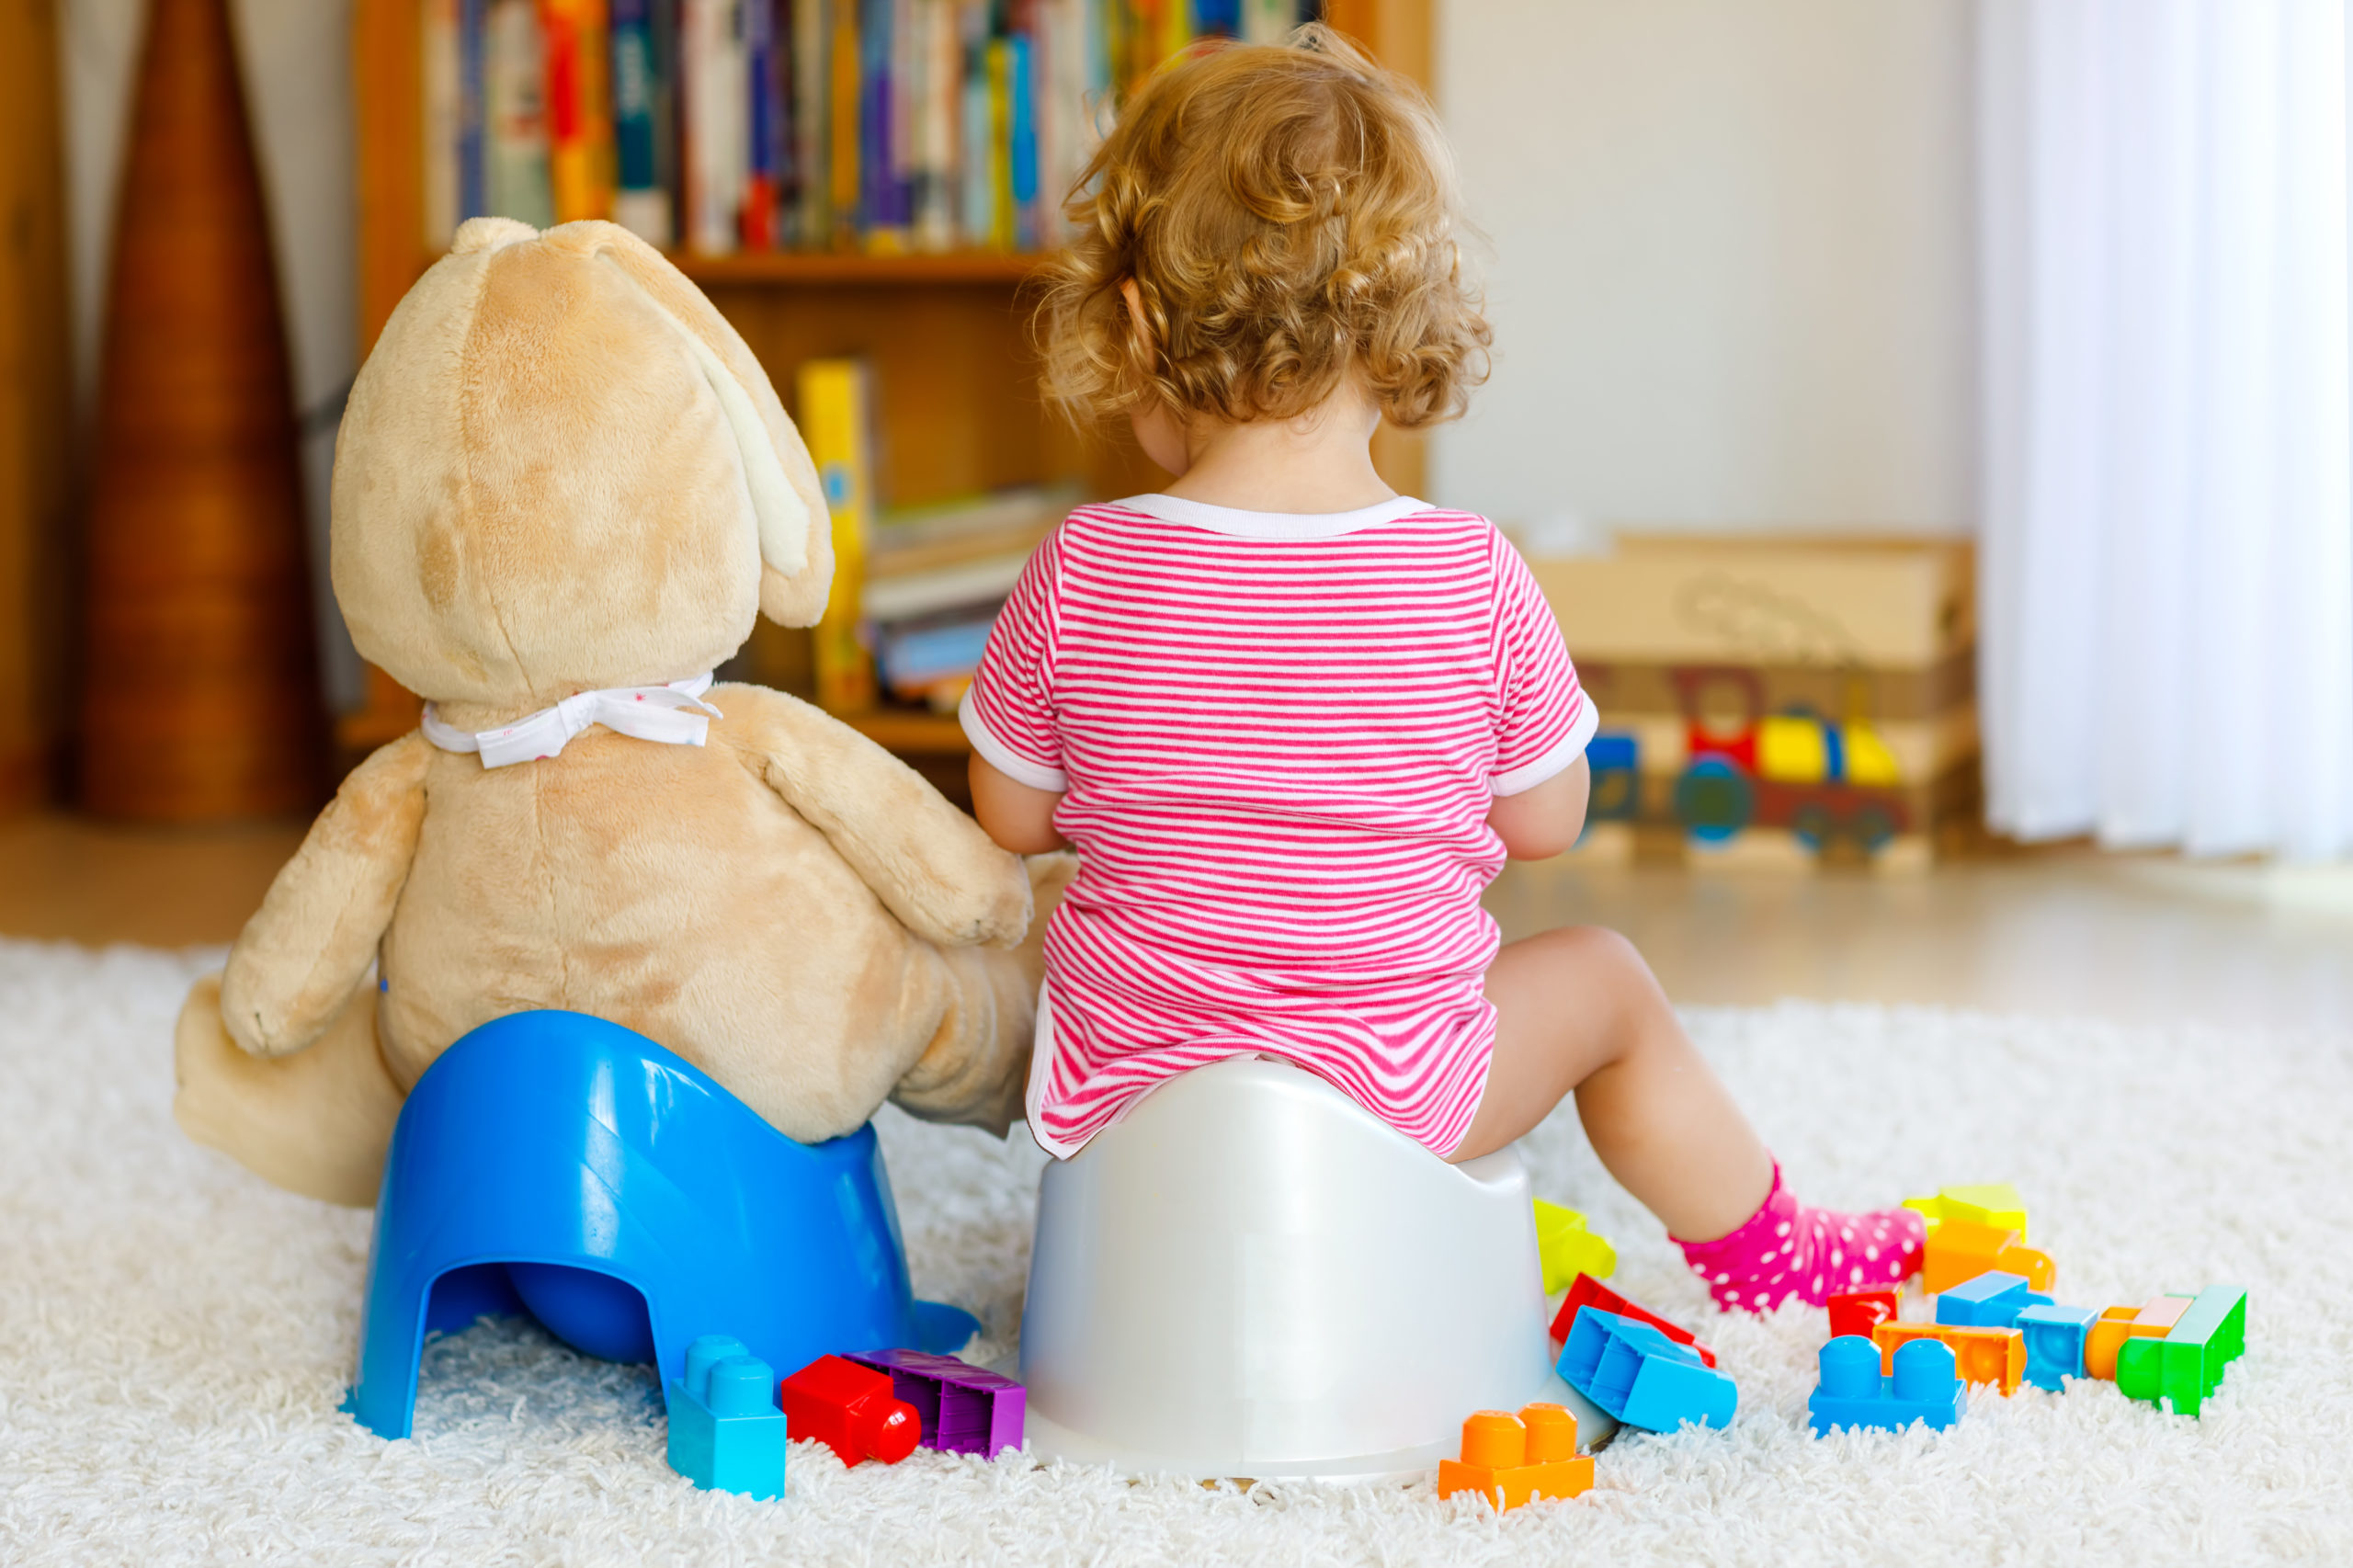 Closeup of cute little 12 month old toddler baby girl child sitting on potty with a teddy doing the same next to her